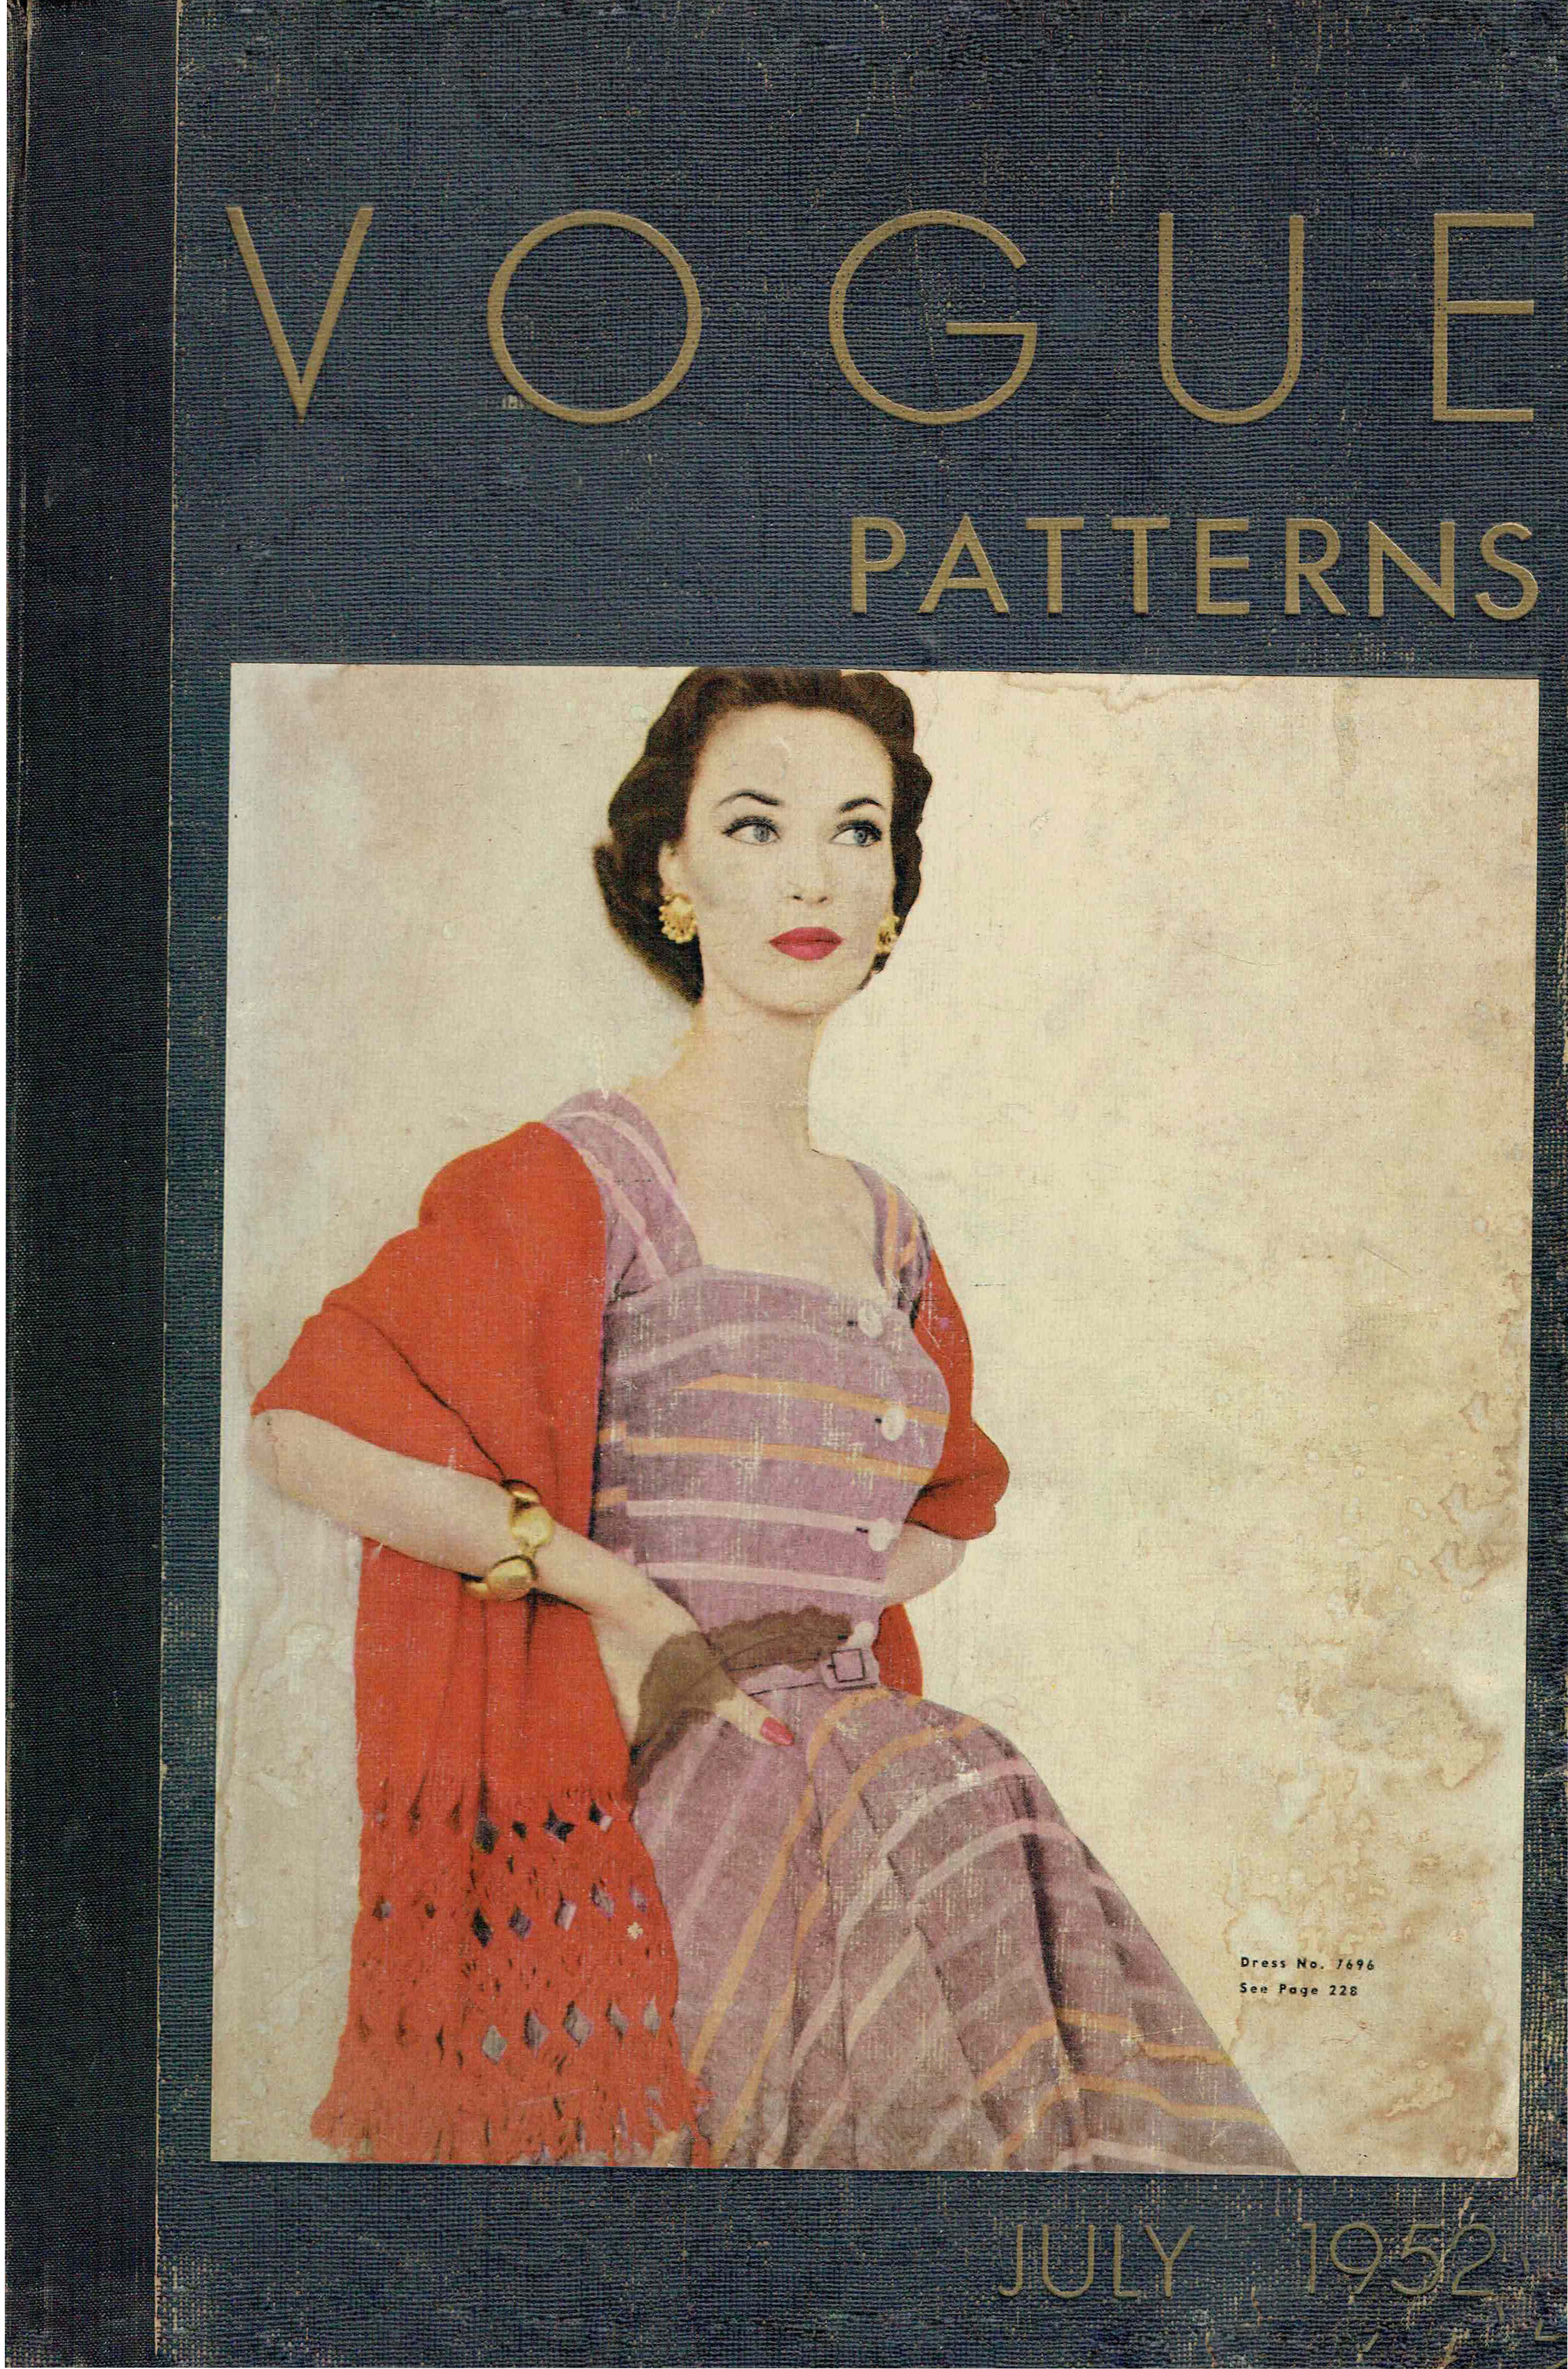 Vogue Patterns Counter Catalog July 1952